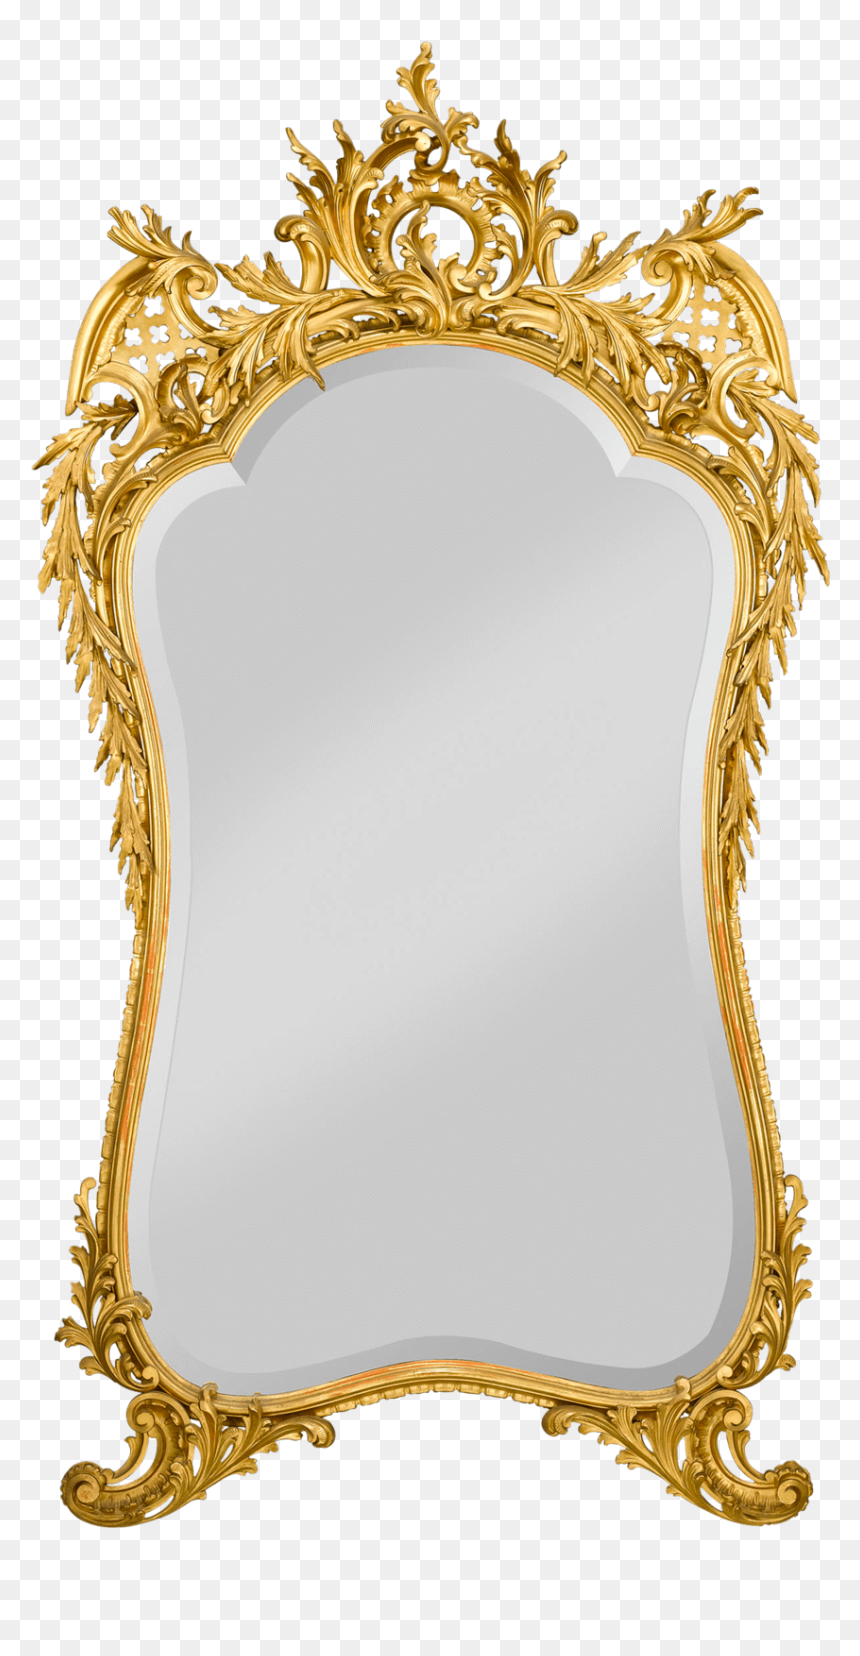 Gold Mirror Frame Png Transparent Png Vhv